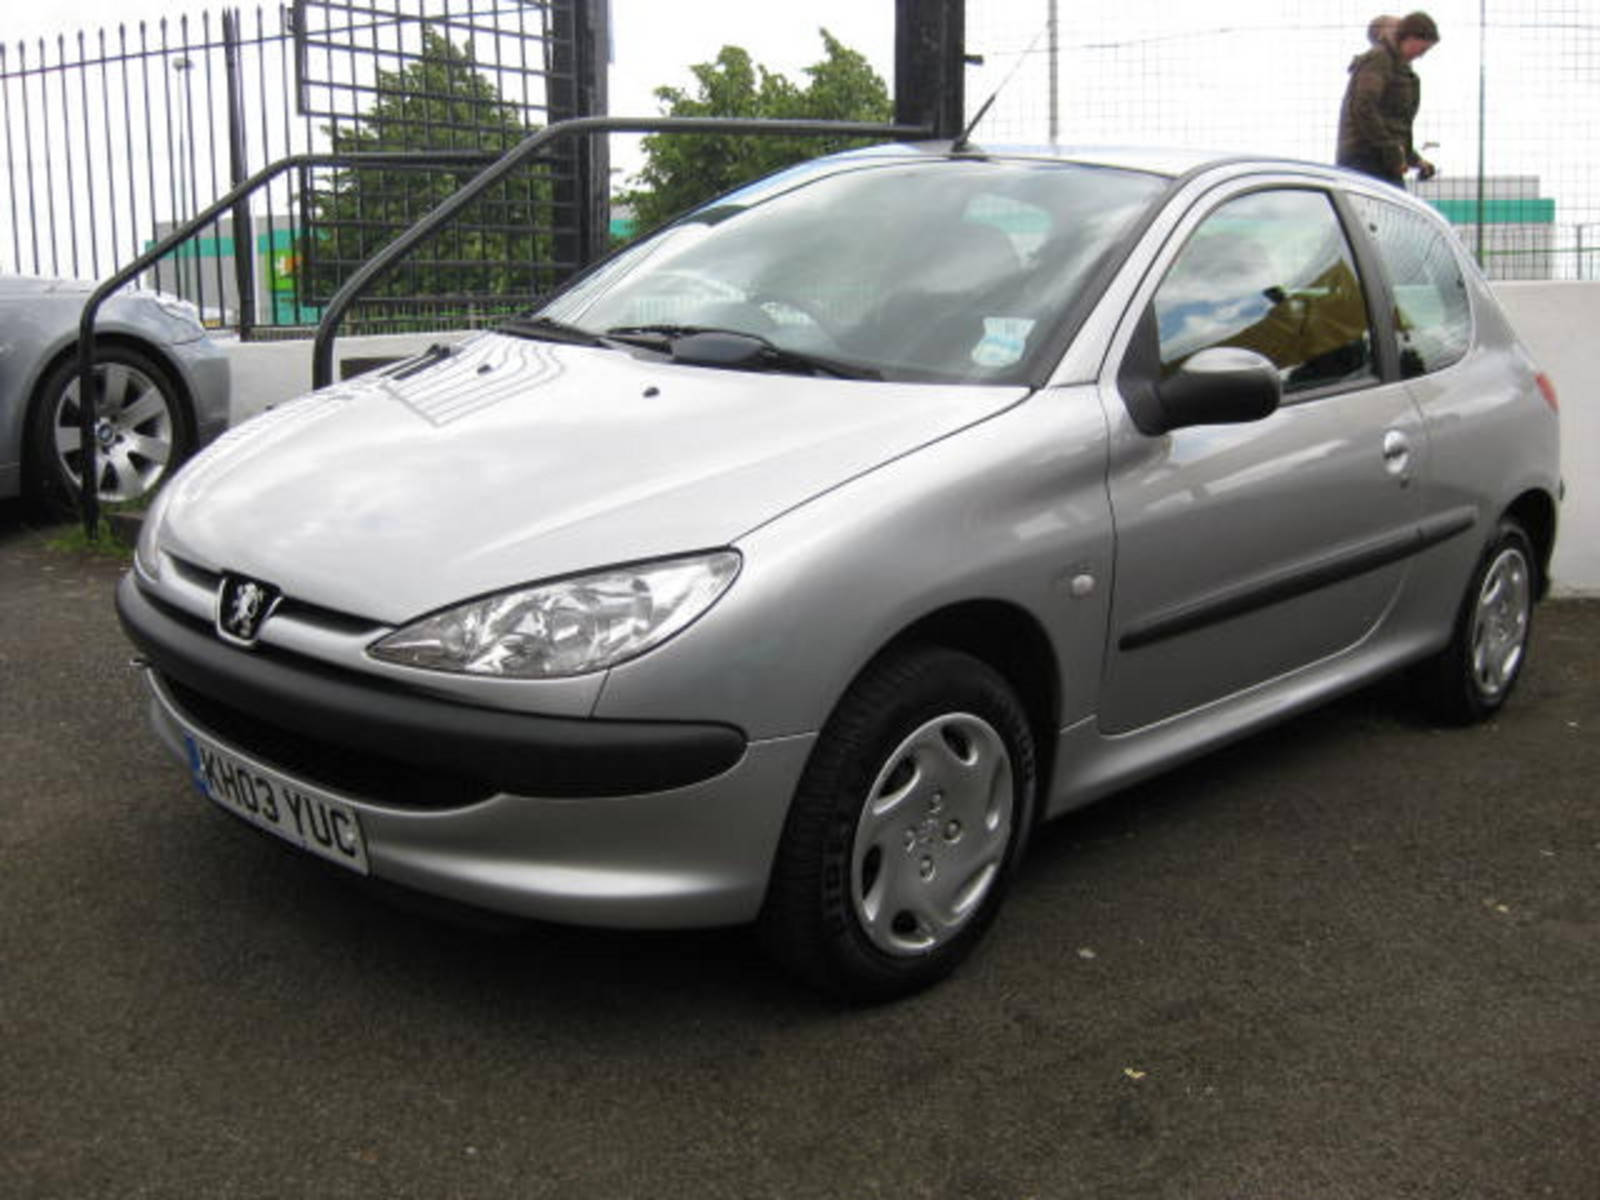 Peugeot 206 1.4 Look Hatchback Petrol Silver at H & D Motors Watford